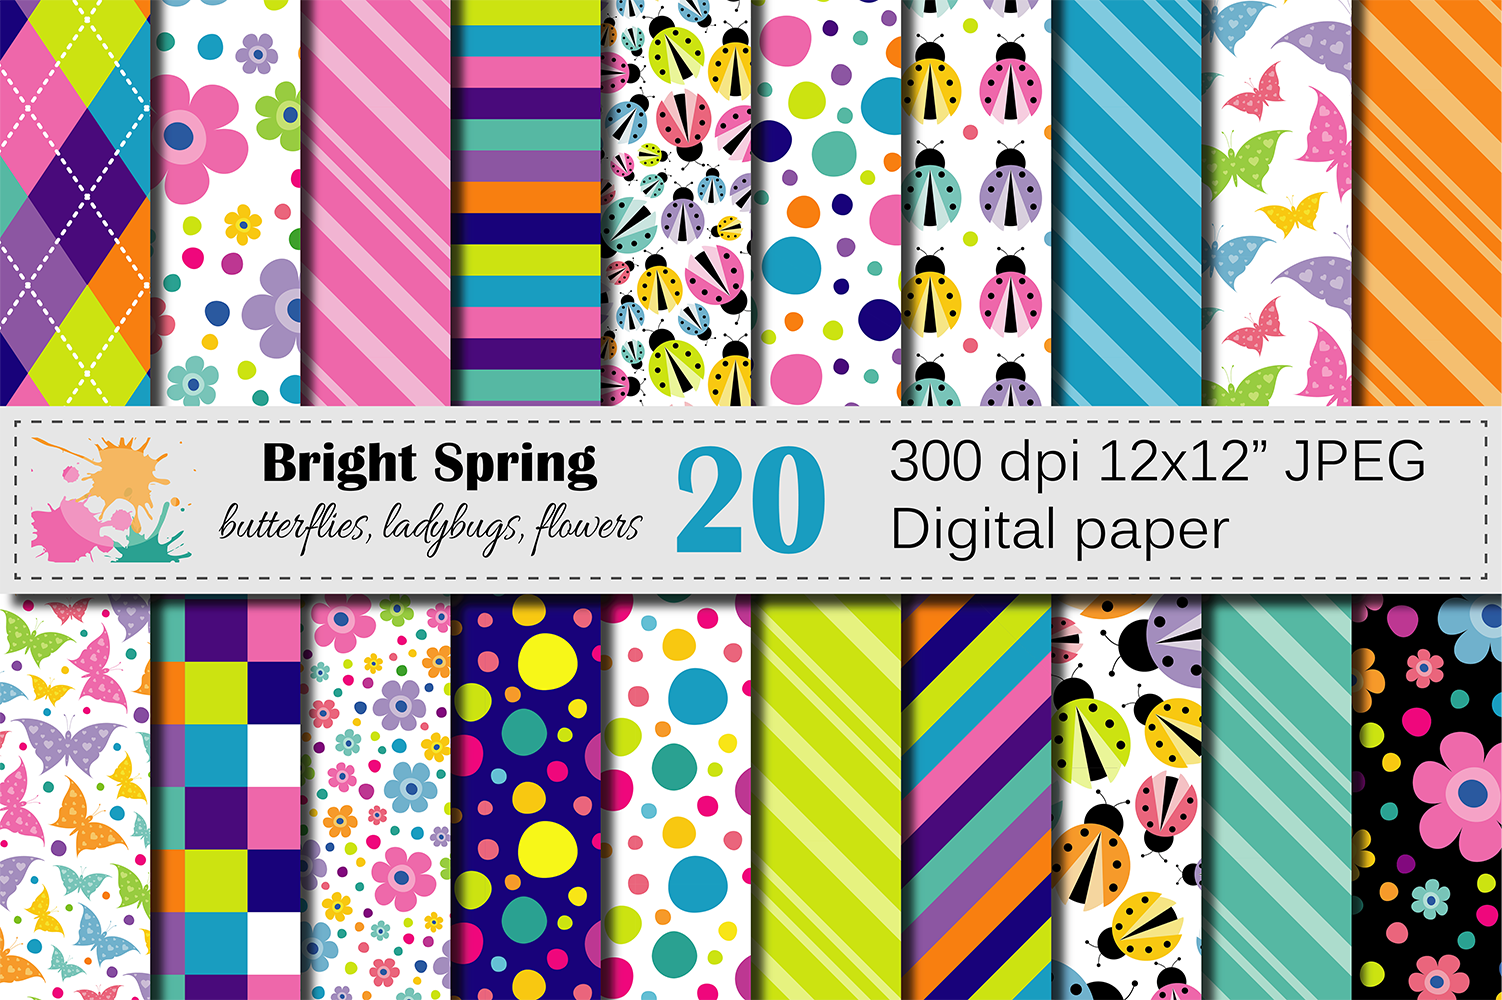 Bright Spring Digital Paper with Butterflies, Ladybugs and Flowers Graphic Backgrounds By VR Digital Design